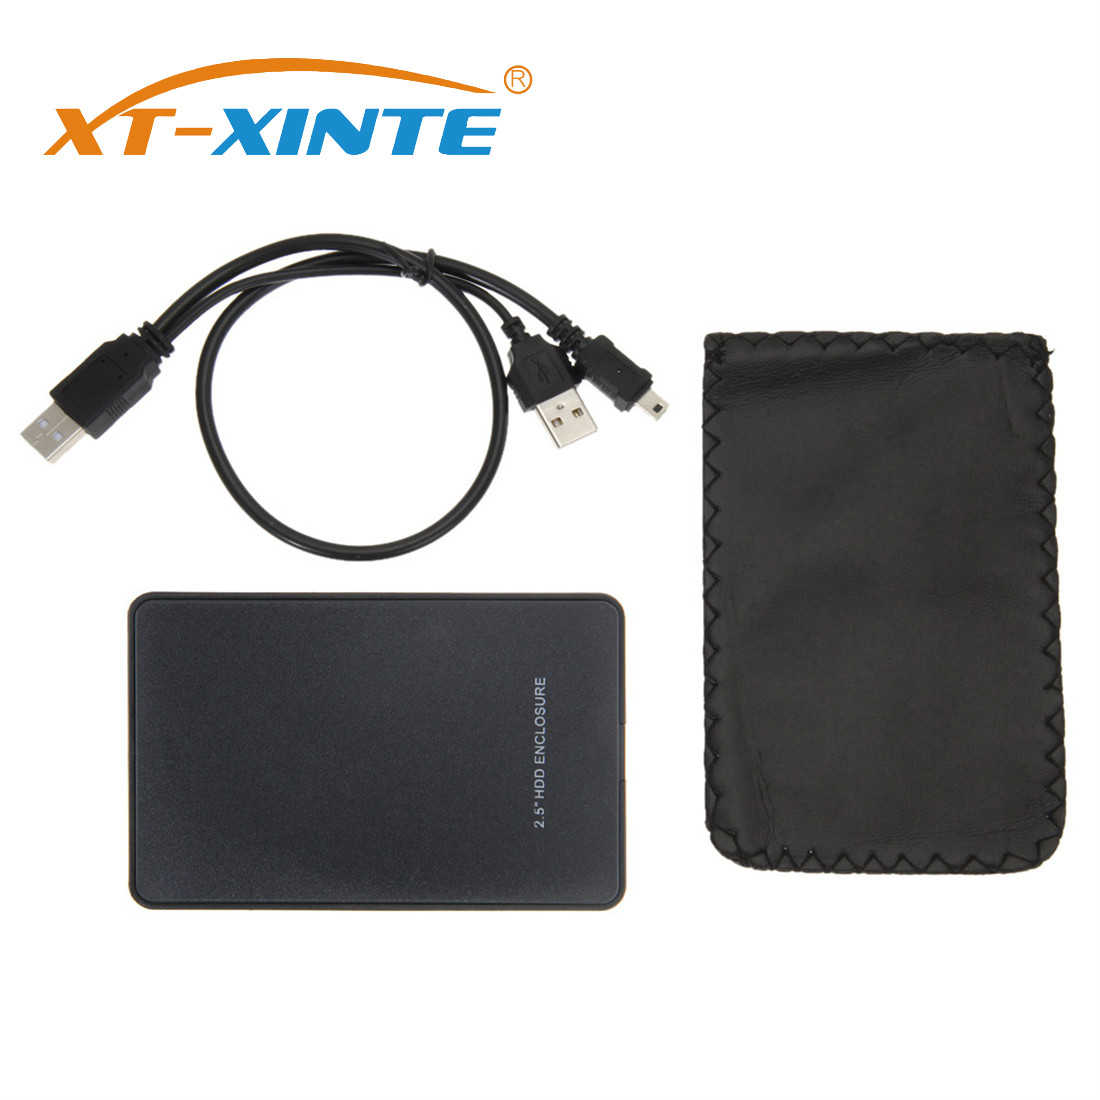 XT-XINTE 2.5 Inch USB 2.0 SATA HDD Box Mobile SSD Hard Drive External Enclosure Case Support 2TB Data Transfer Backup Tool